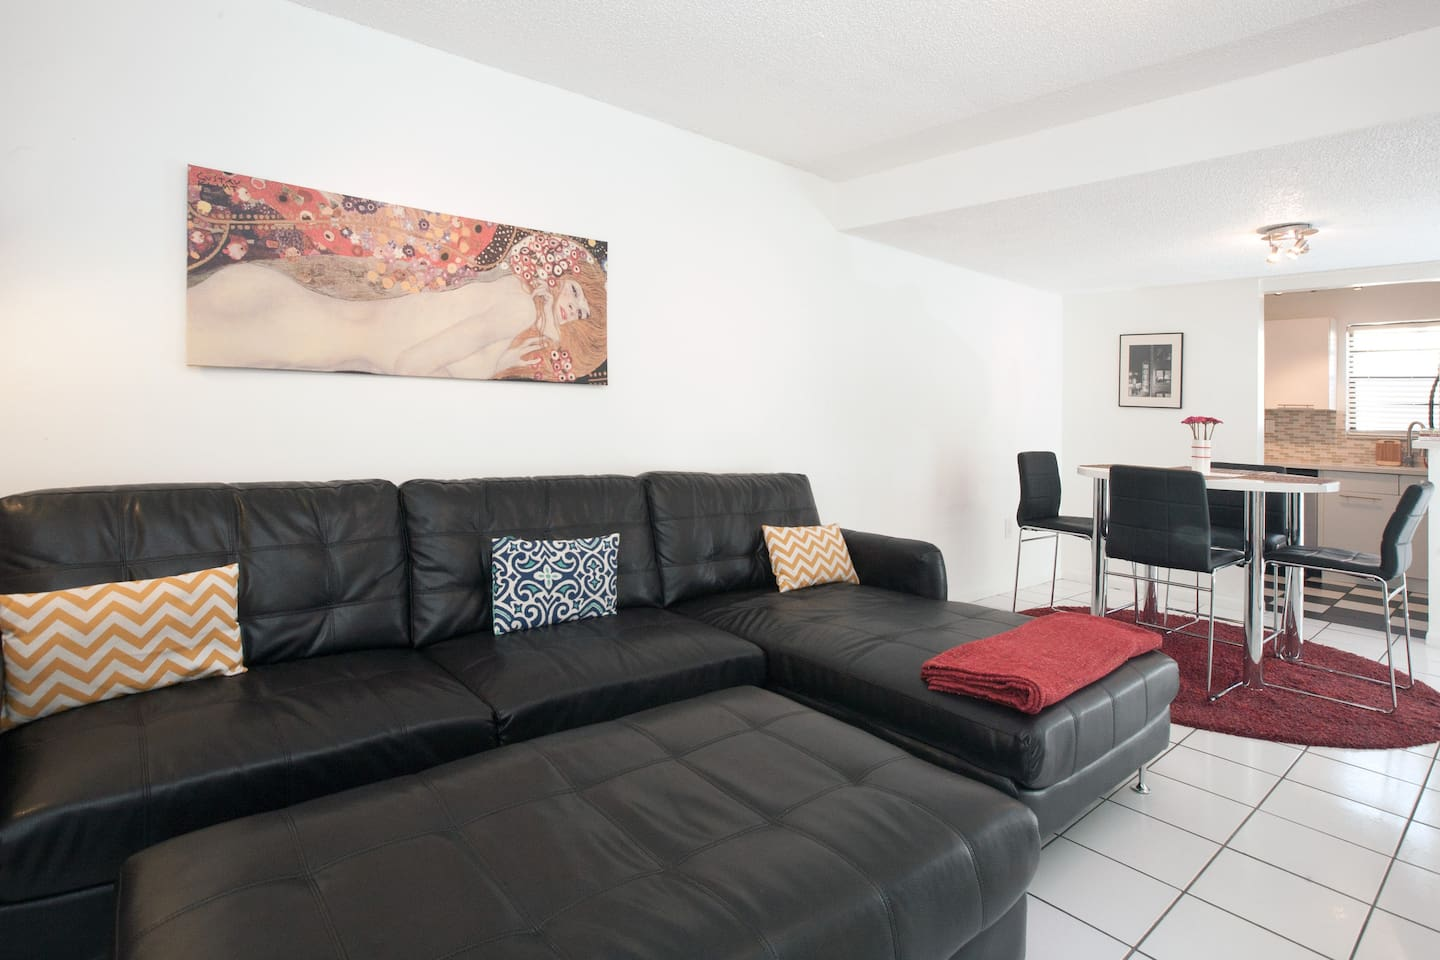 Located RIGHT in the heart of all South Beach has to offer, this spacious apartment comfortably sleeps 6 with 2 Bedrooms and 2 Bathrooms plus a sofa that sleeps 2!